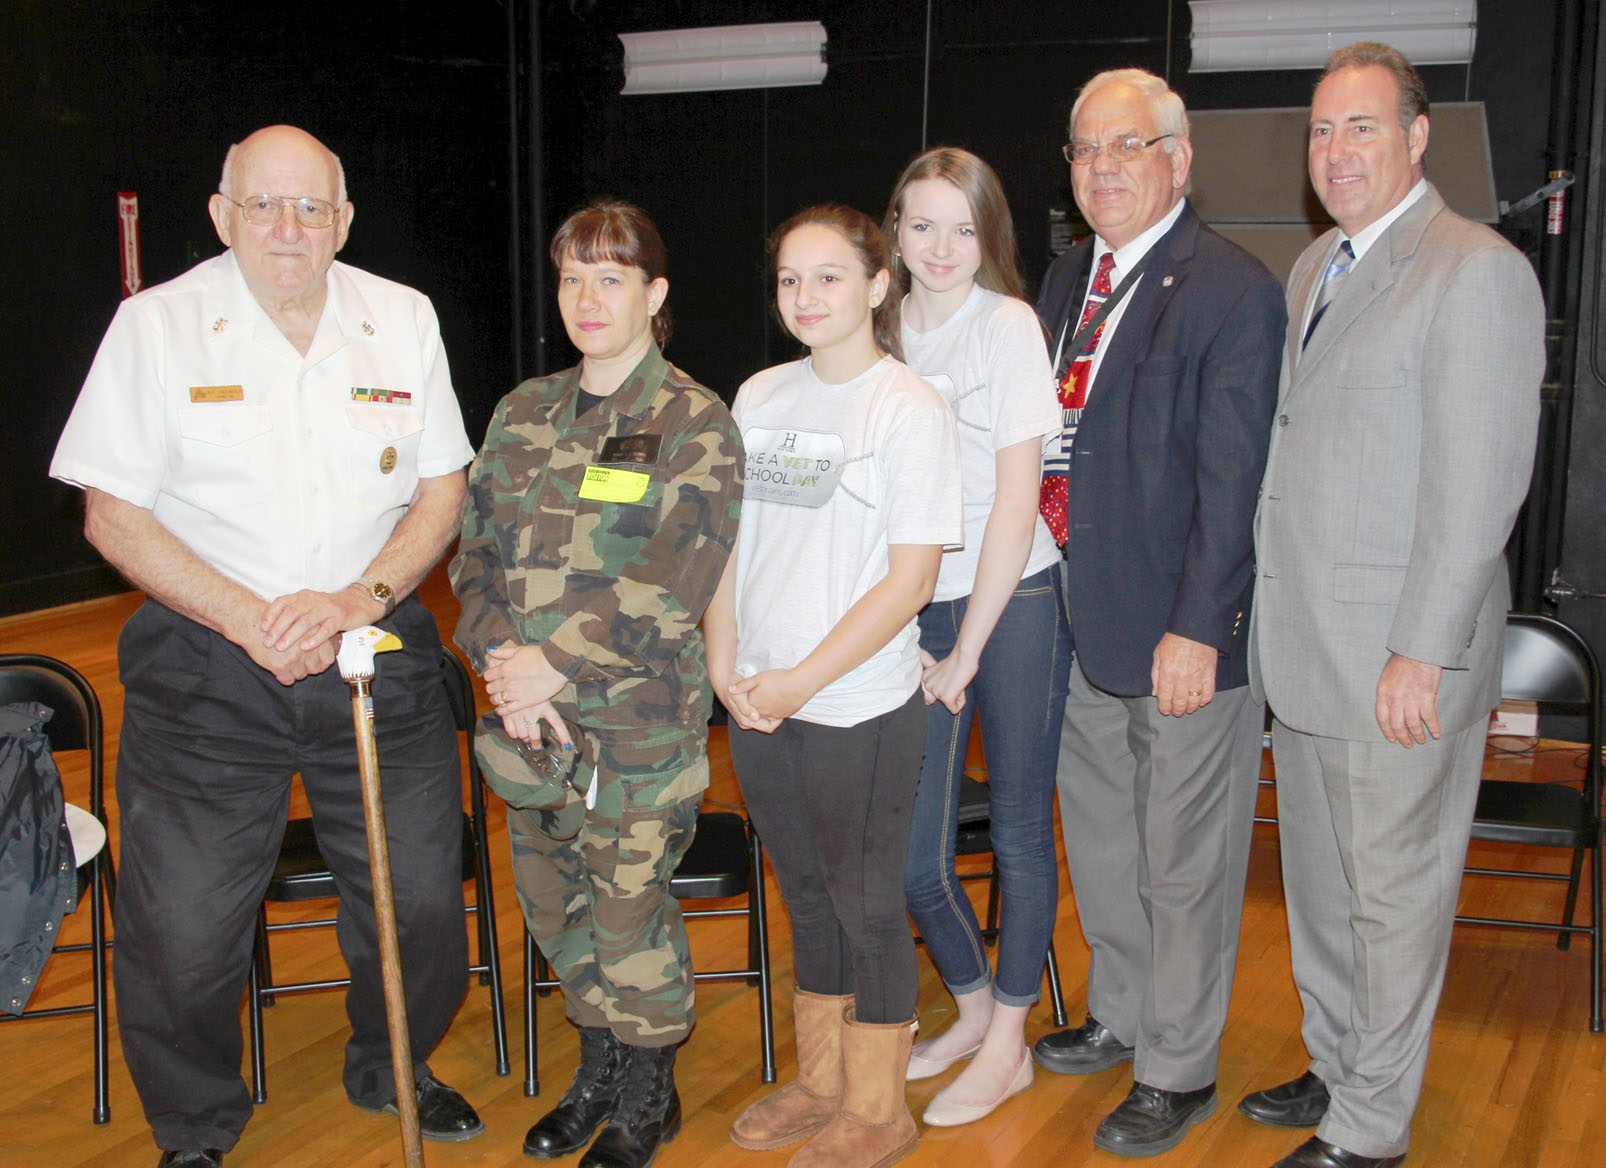 Dick Griswold, Sharon Chaplain, Hannah Johncox, Catherine Davignon, Gerry Maar and Senator Joe Robach all participated in Take a Vet to School Day at Brockport Oliver Middle School on November 13. Provided photo